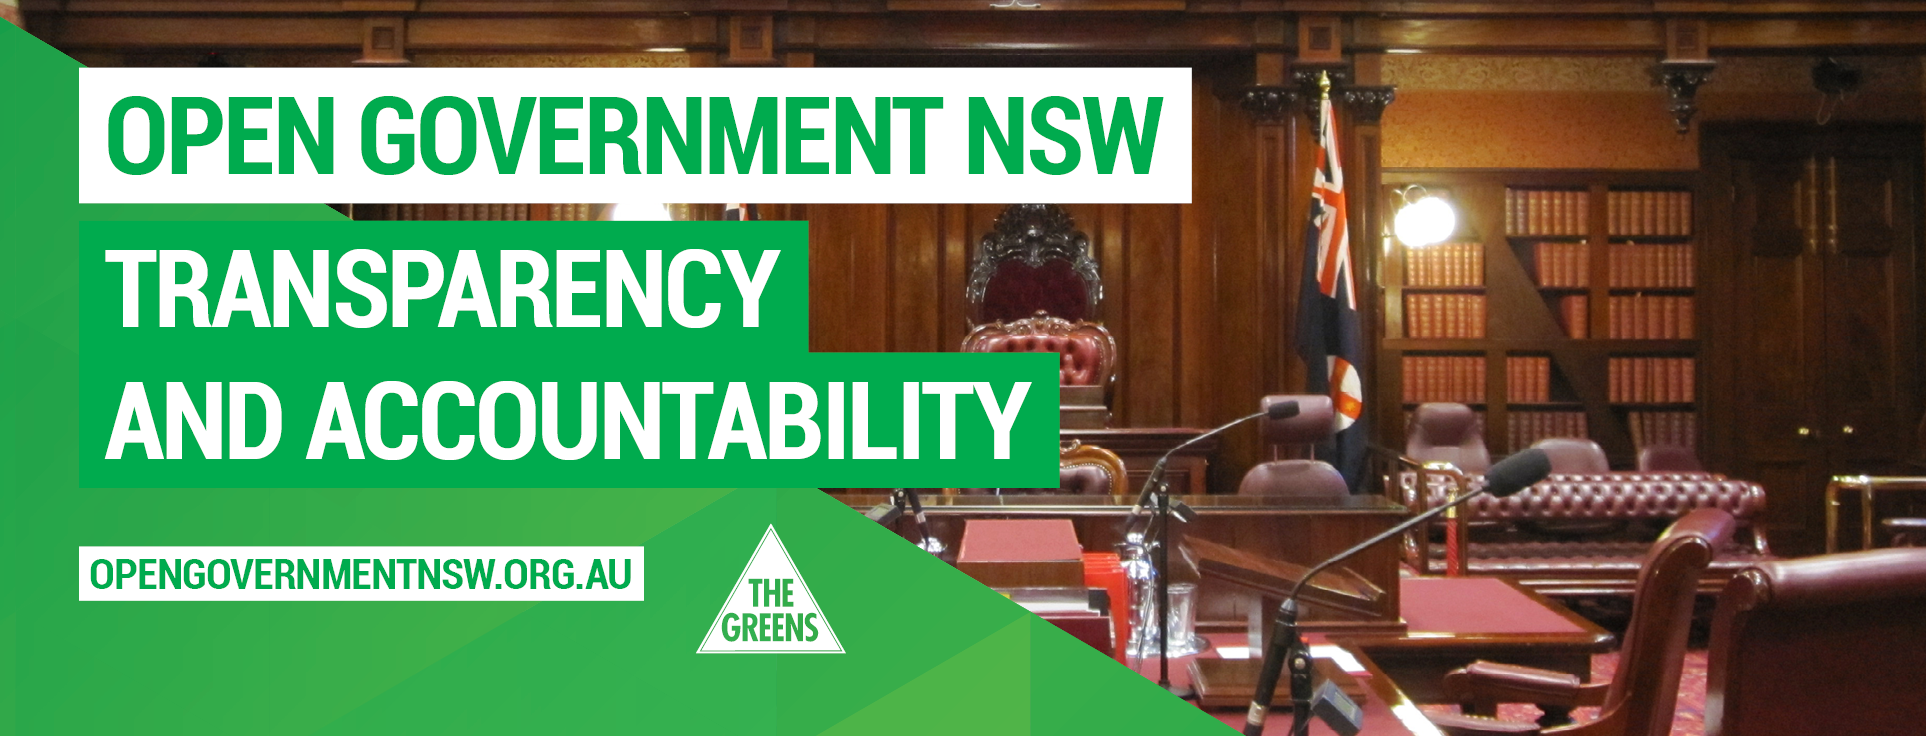 Open Government NSW